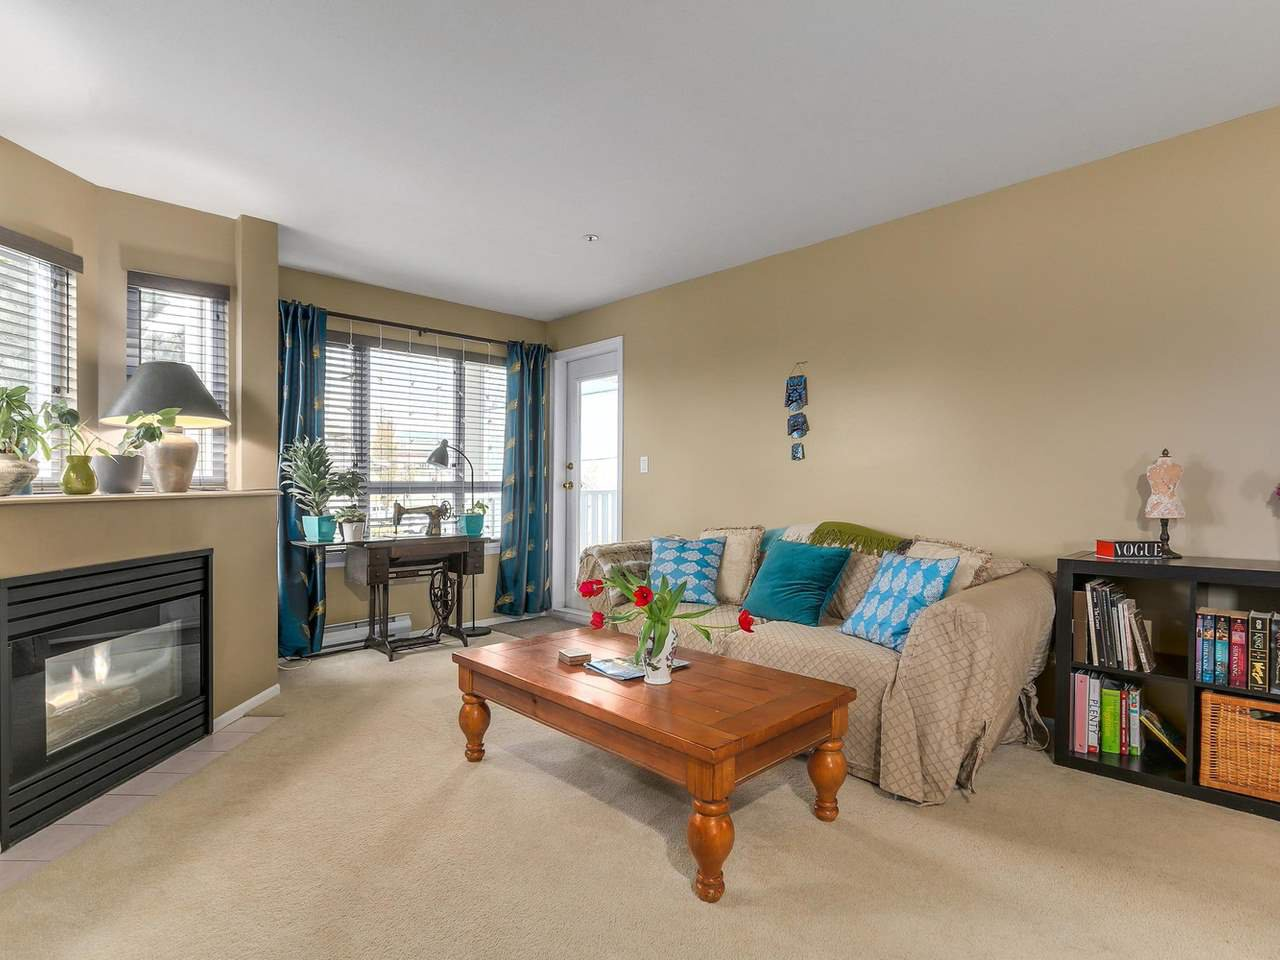 """Photo 3: Photos: 301 1623 E 2ND Avenue in Vancouver: Grandview VE Condo for sale in """"GRANDVIEW MANOR"""" (Vancouver East)  : MLS®# R2122830"""